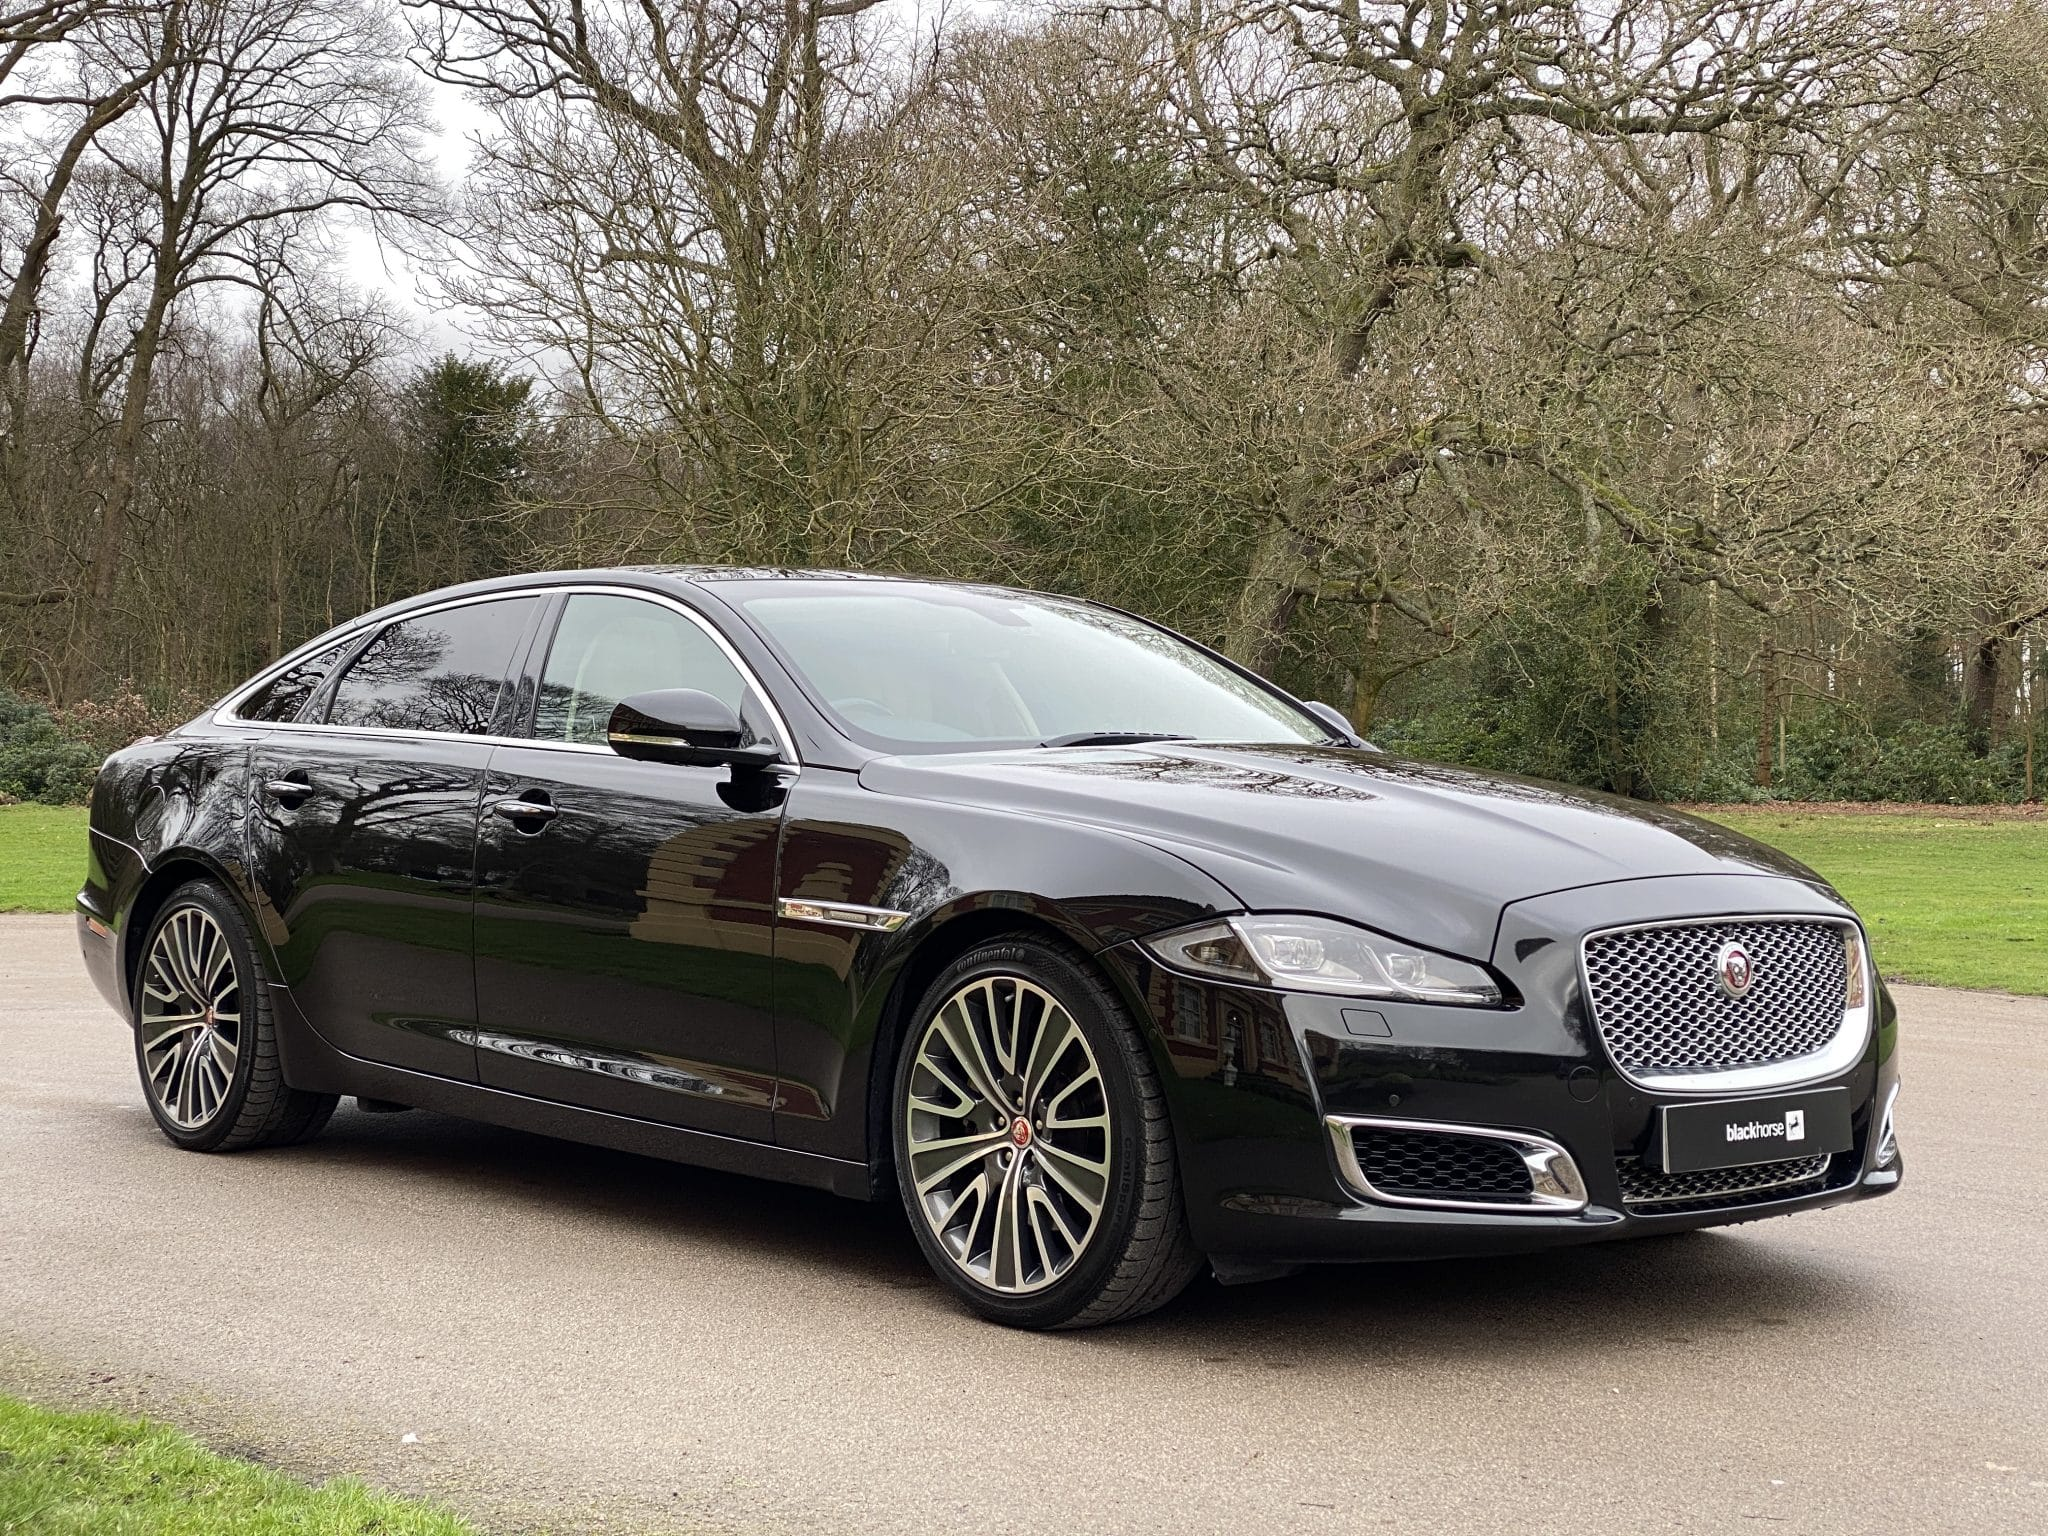 2017 17 JAGUAR XJ LWB 3.0D V6 AUTO AUTOBIOGRAPHY 296BHP AUTO SALOON 1 Prev Owner FSH Rear Screen Excellent Value